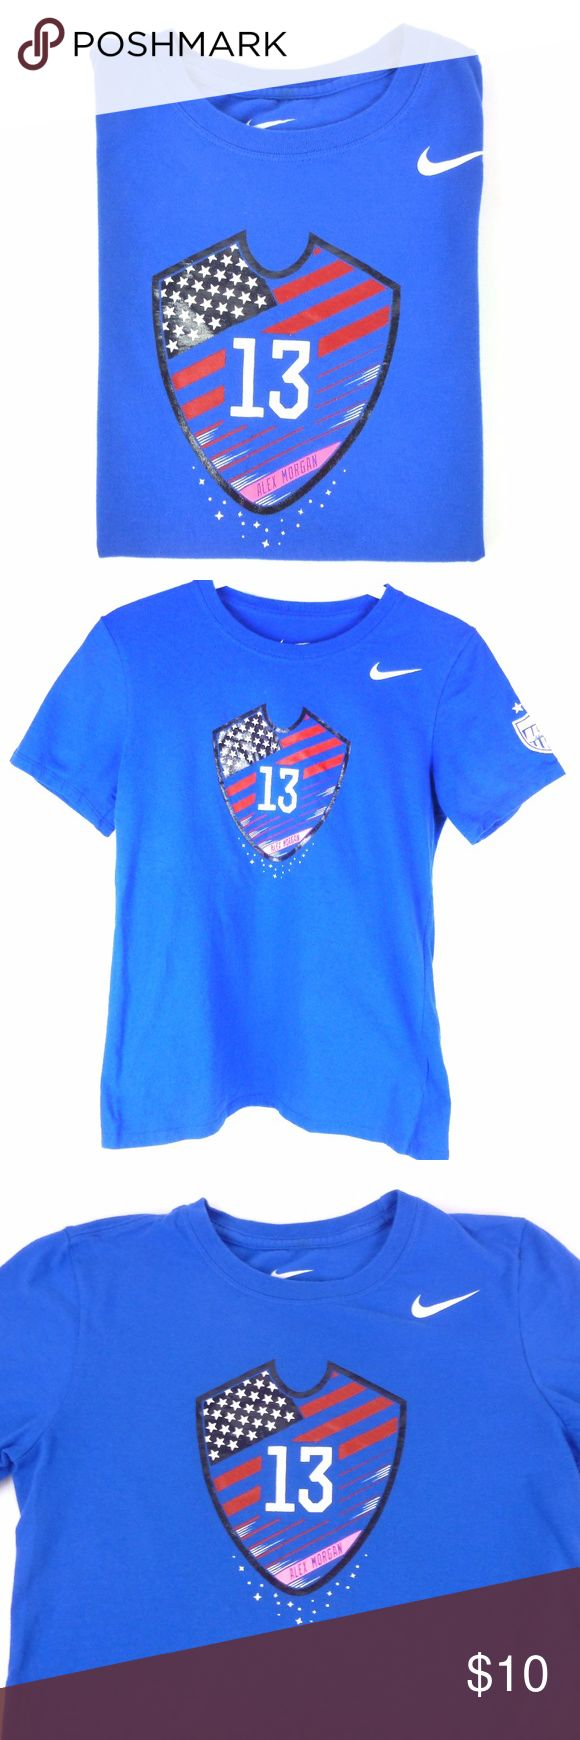 """Nike Womens Alex Morgan Soccer T-Shirt in Blue Nike Alex Morgan soccer T-shirt in Size Small.  100% cotton and measures 15.5"""" armpit to armpit and 22.5"""" from shoulder to bottom of top Nike Tops Tees - Short Sleeve"""